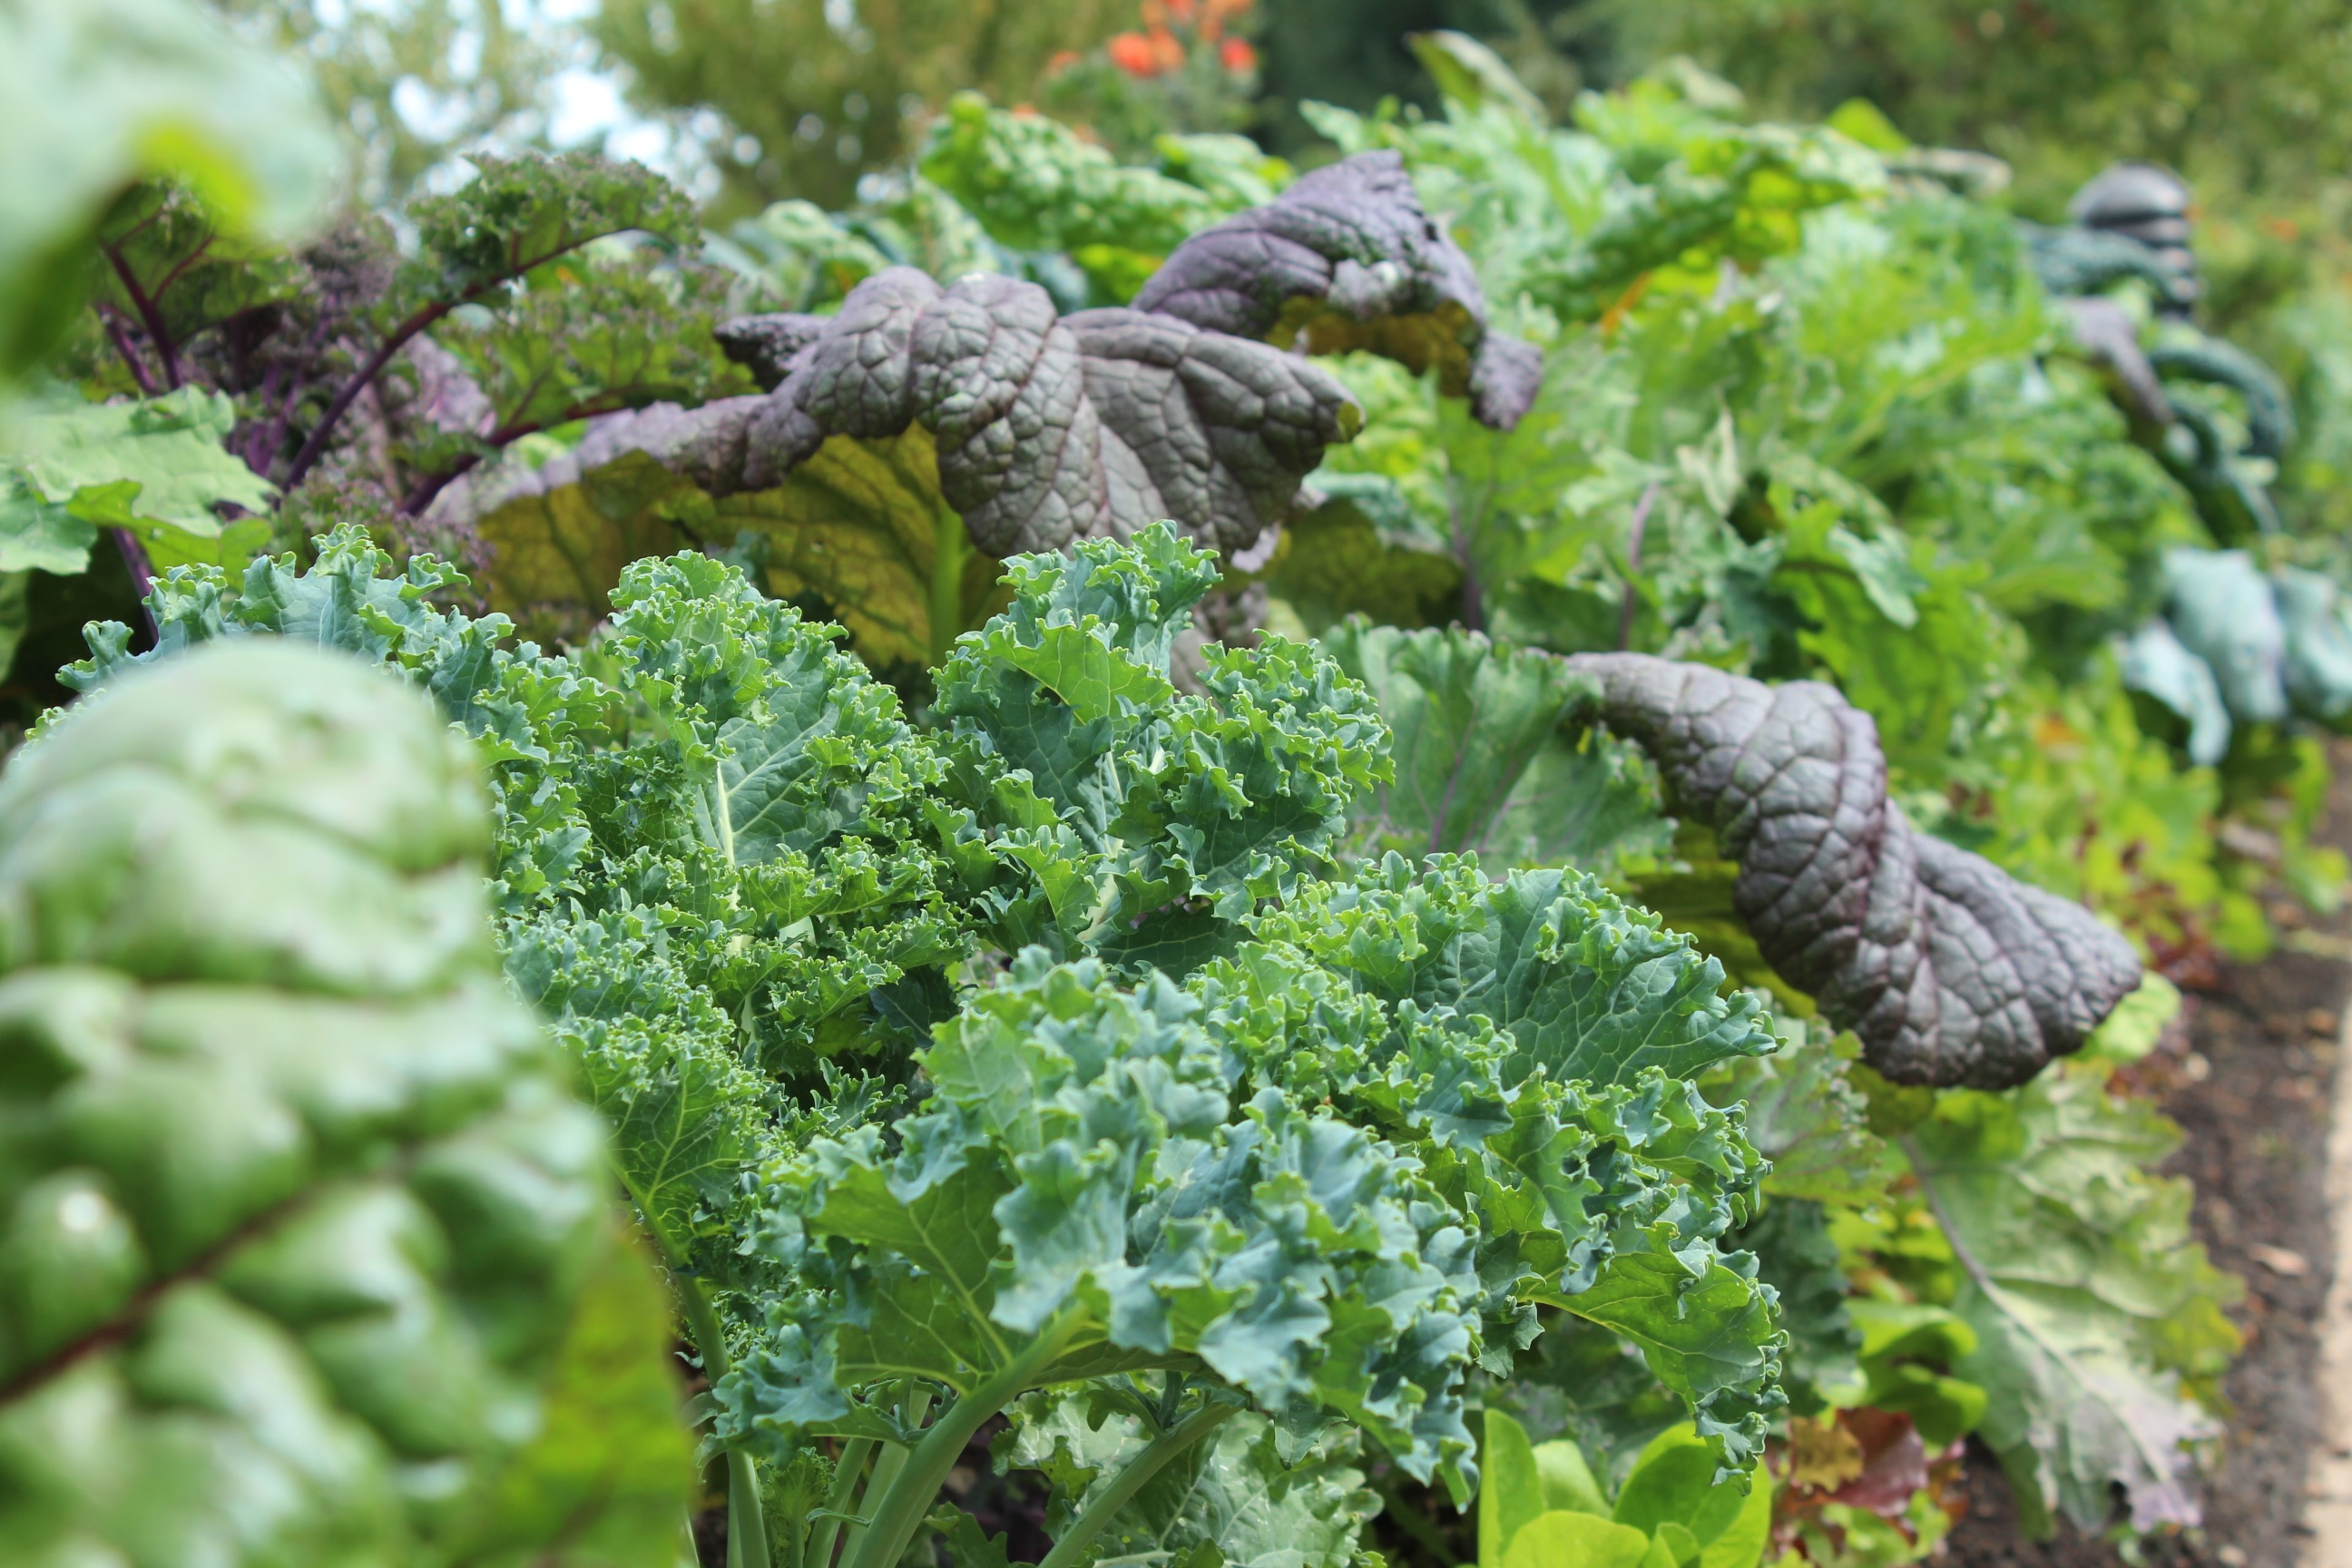 Image of green vegetables depicting dietary fiber source to help reduce insulin resistance from CALMERme.com